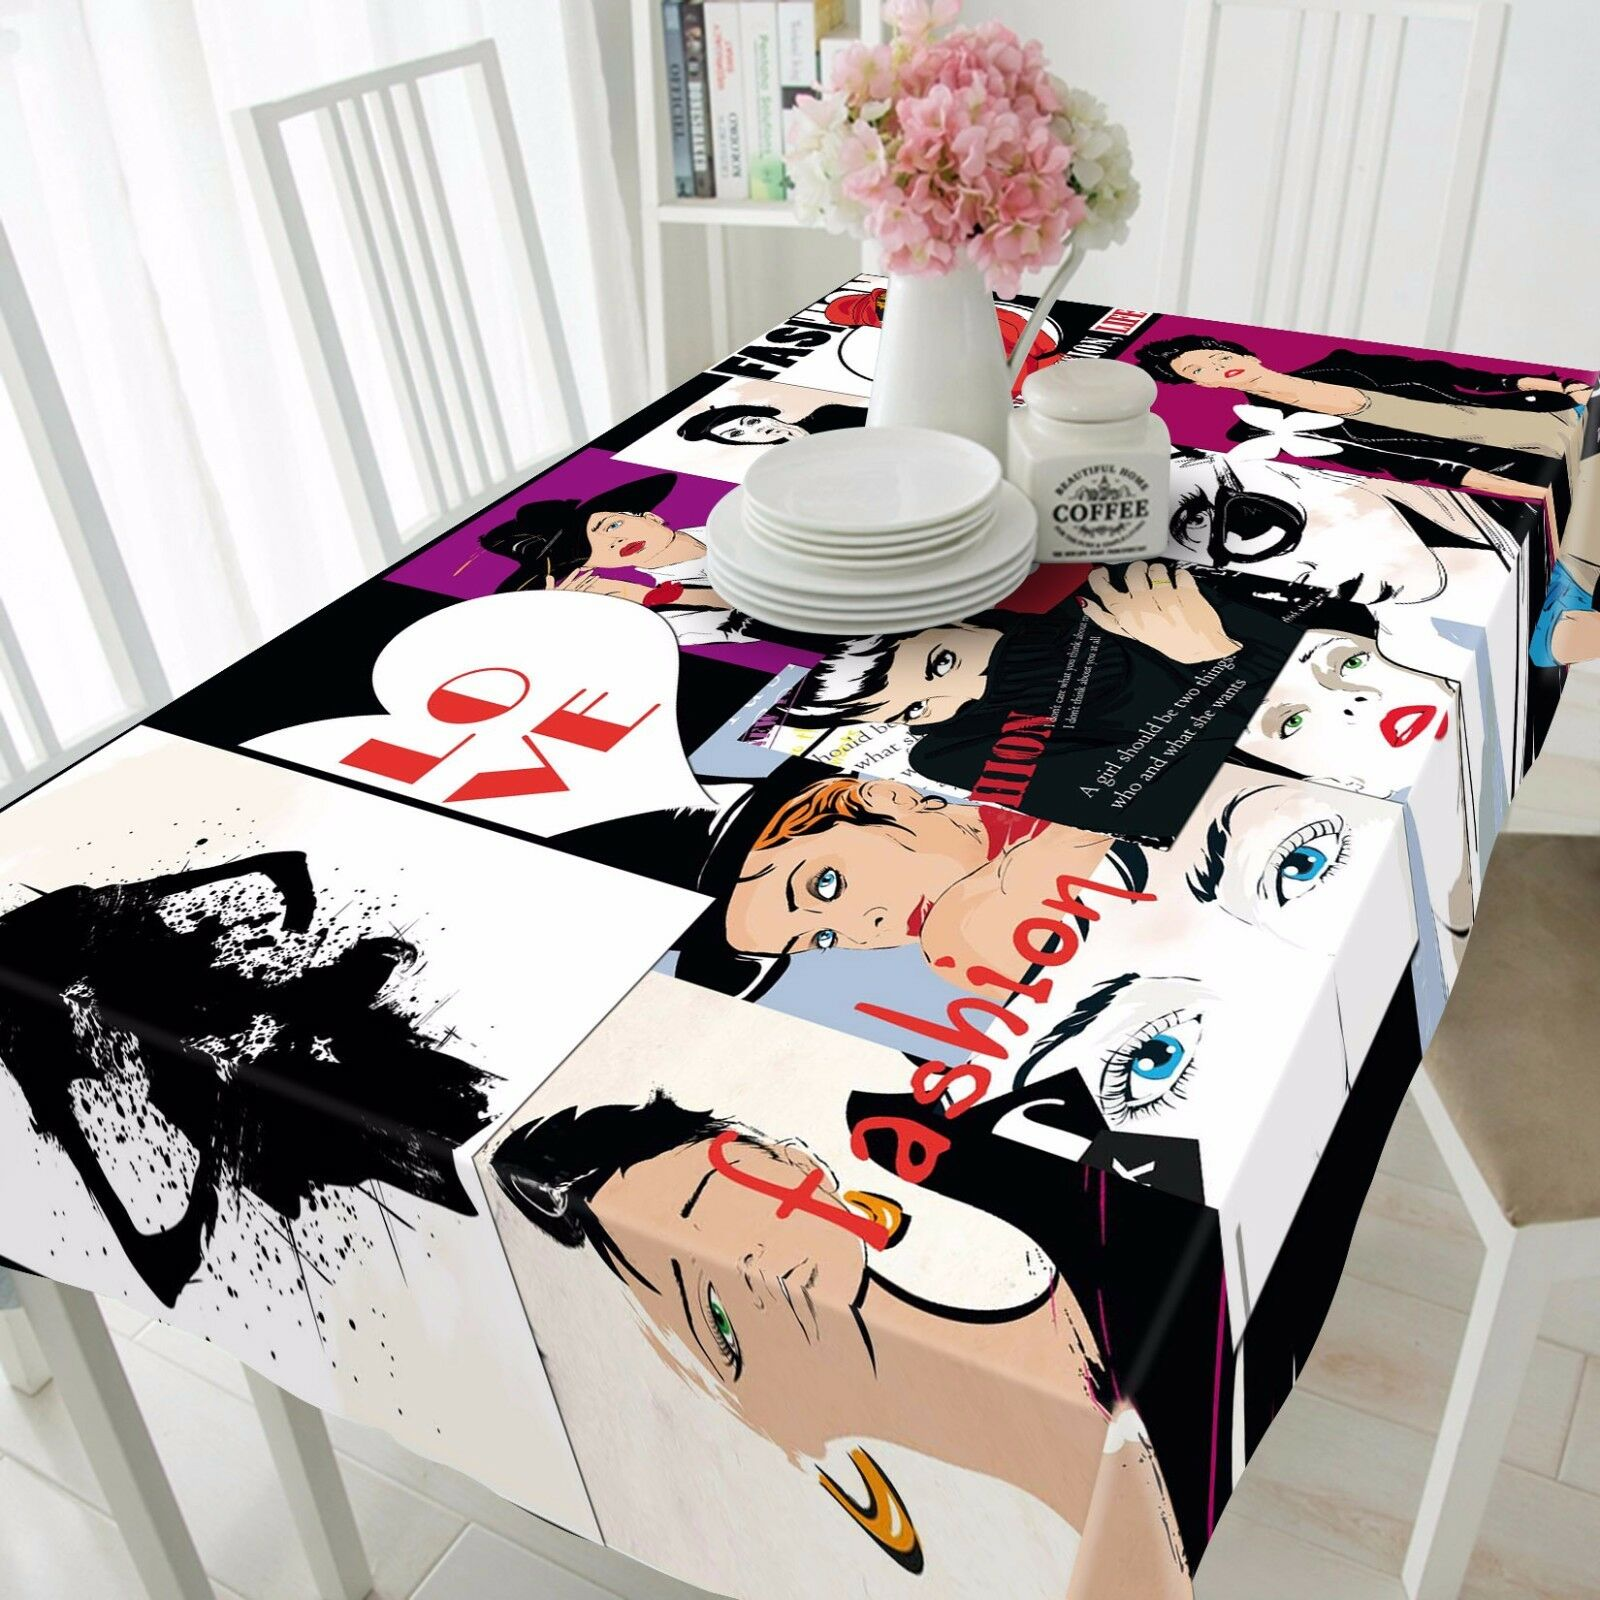 3D Figure 4607 Tablecloth Table Cover Cloth Birthday Party Event AJ WALLPAPER AU